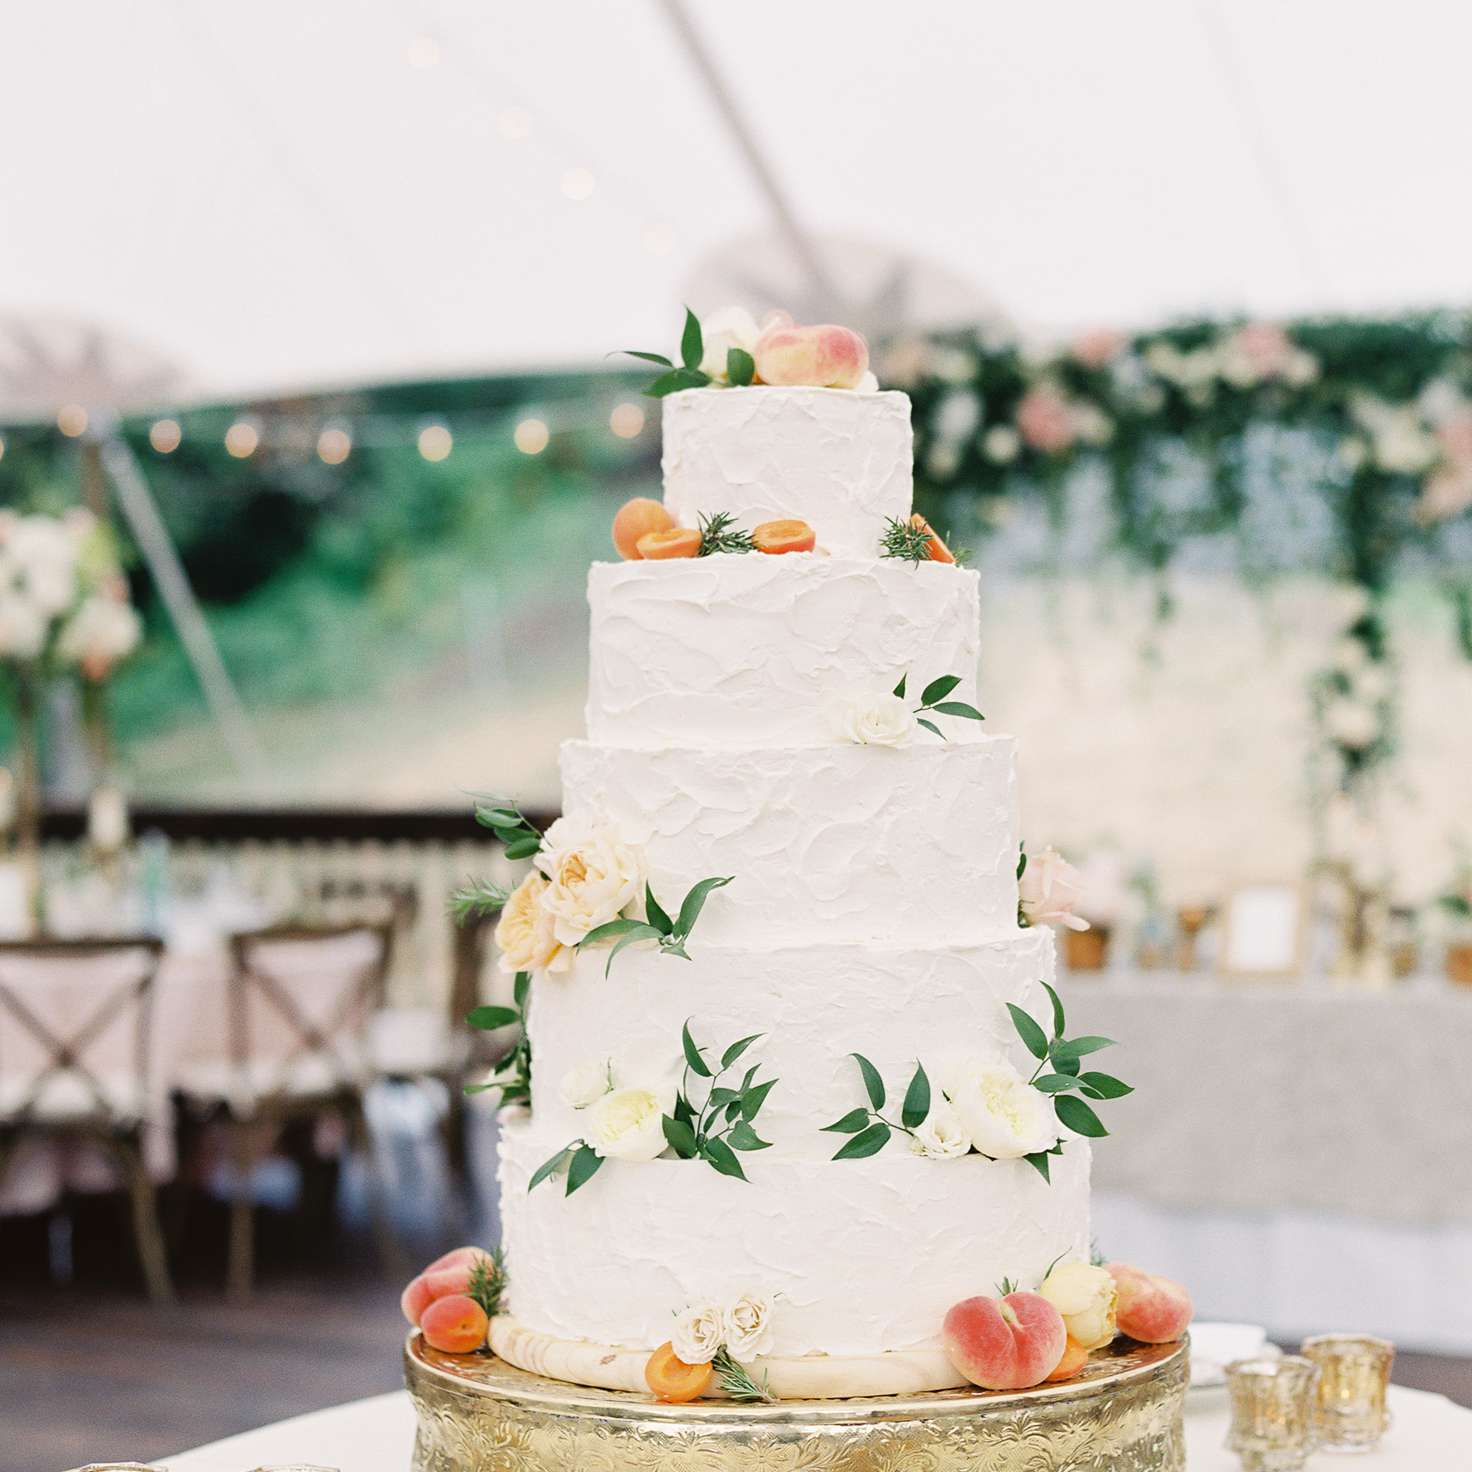 Five-Tiered White Wedding Cake with Flowers and Fruit